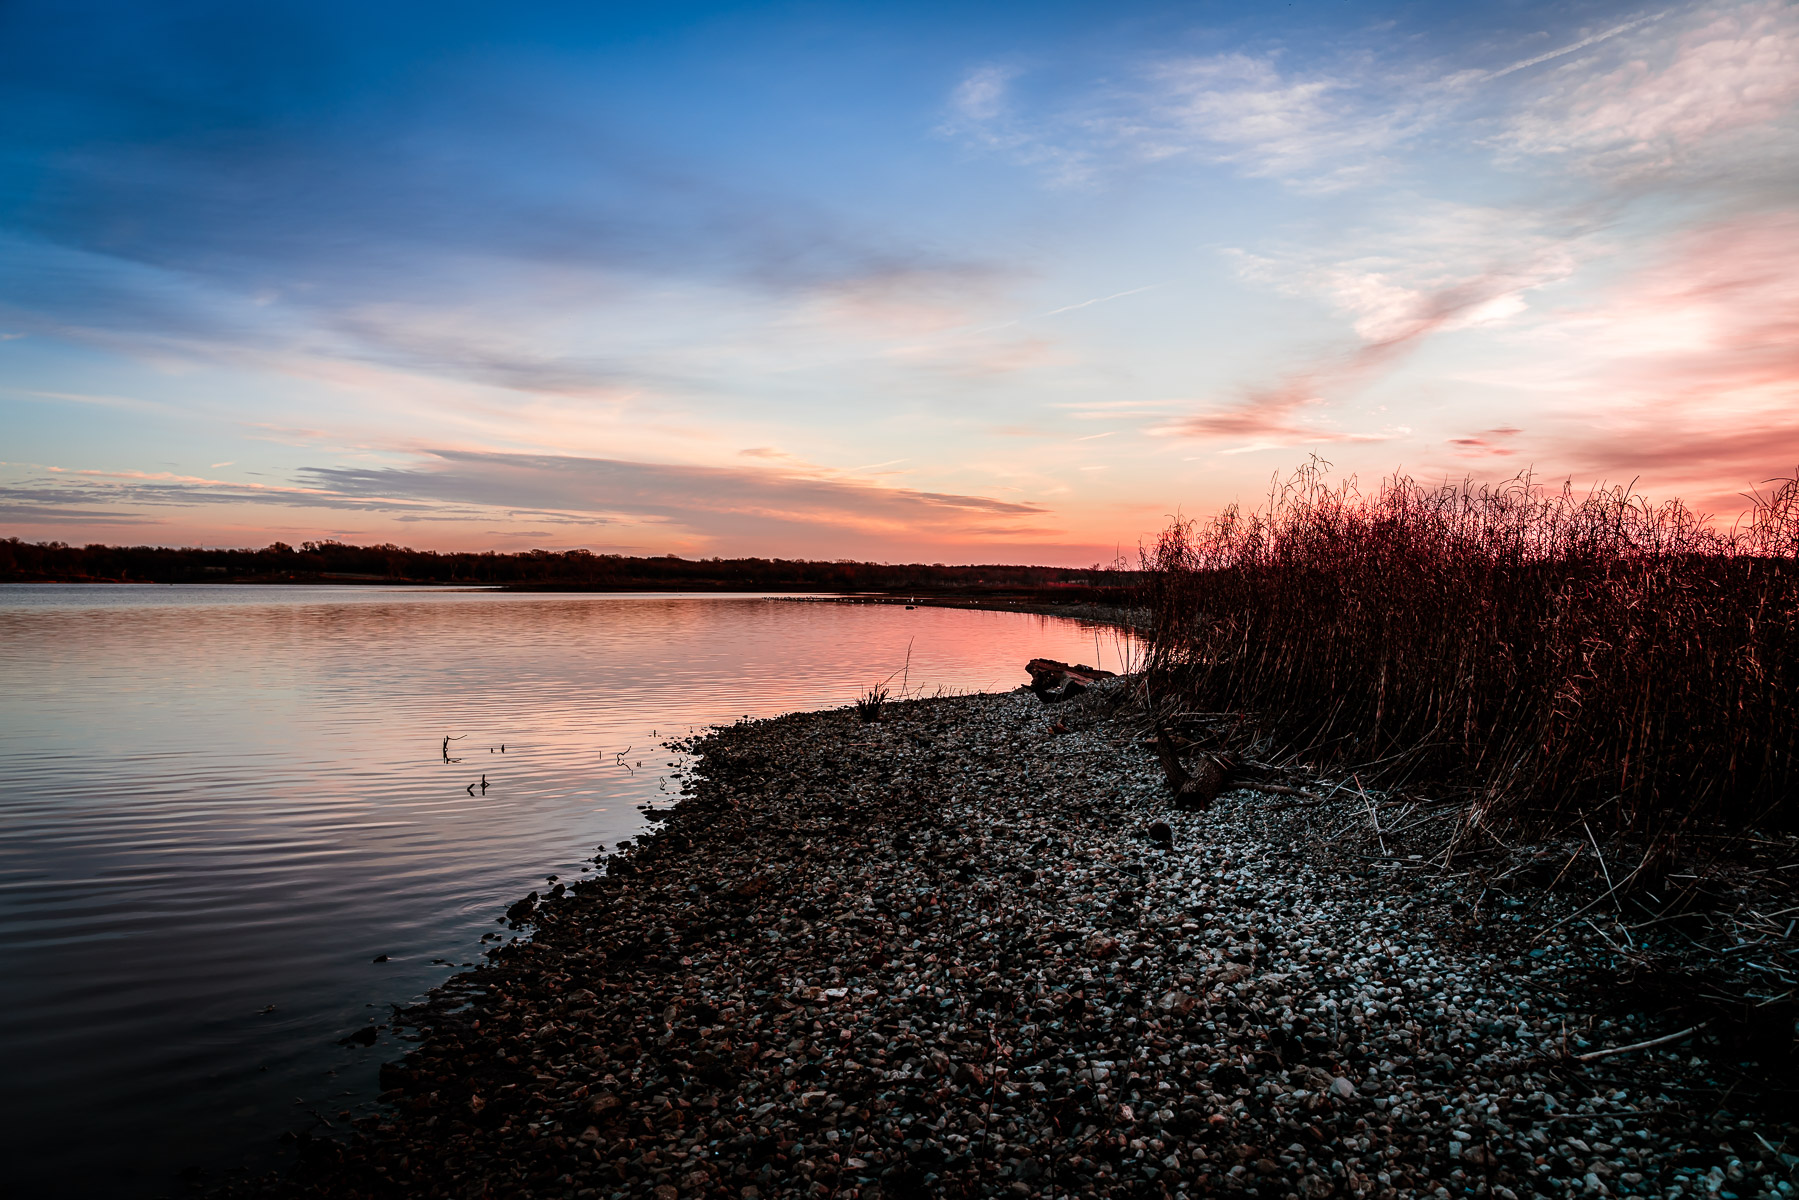 The sun begins to rise on the Big Mineral Arm of Lake Texoma at the Hagerman National Wildlife Refuge, Texas.